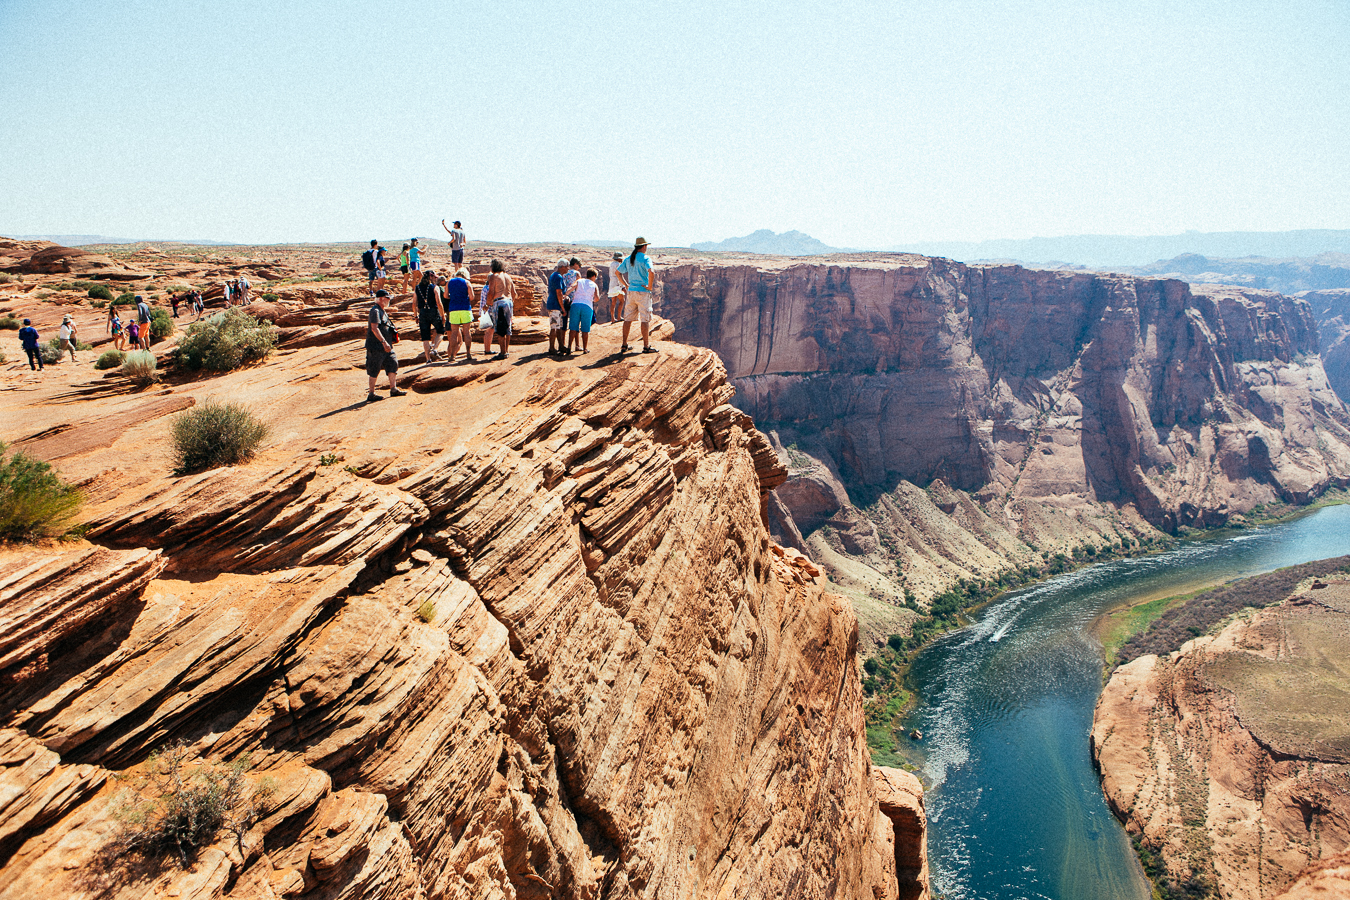 Near Lake Powell is a point where the Colorado River wraps a 270º curve, called Horseshoe Bend. It's a fairly easy hike to view it, which brings hundreds of tourists to this 1000' cliff where you can get right near the edge...